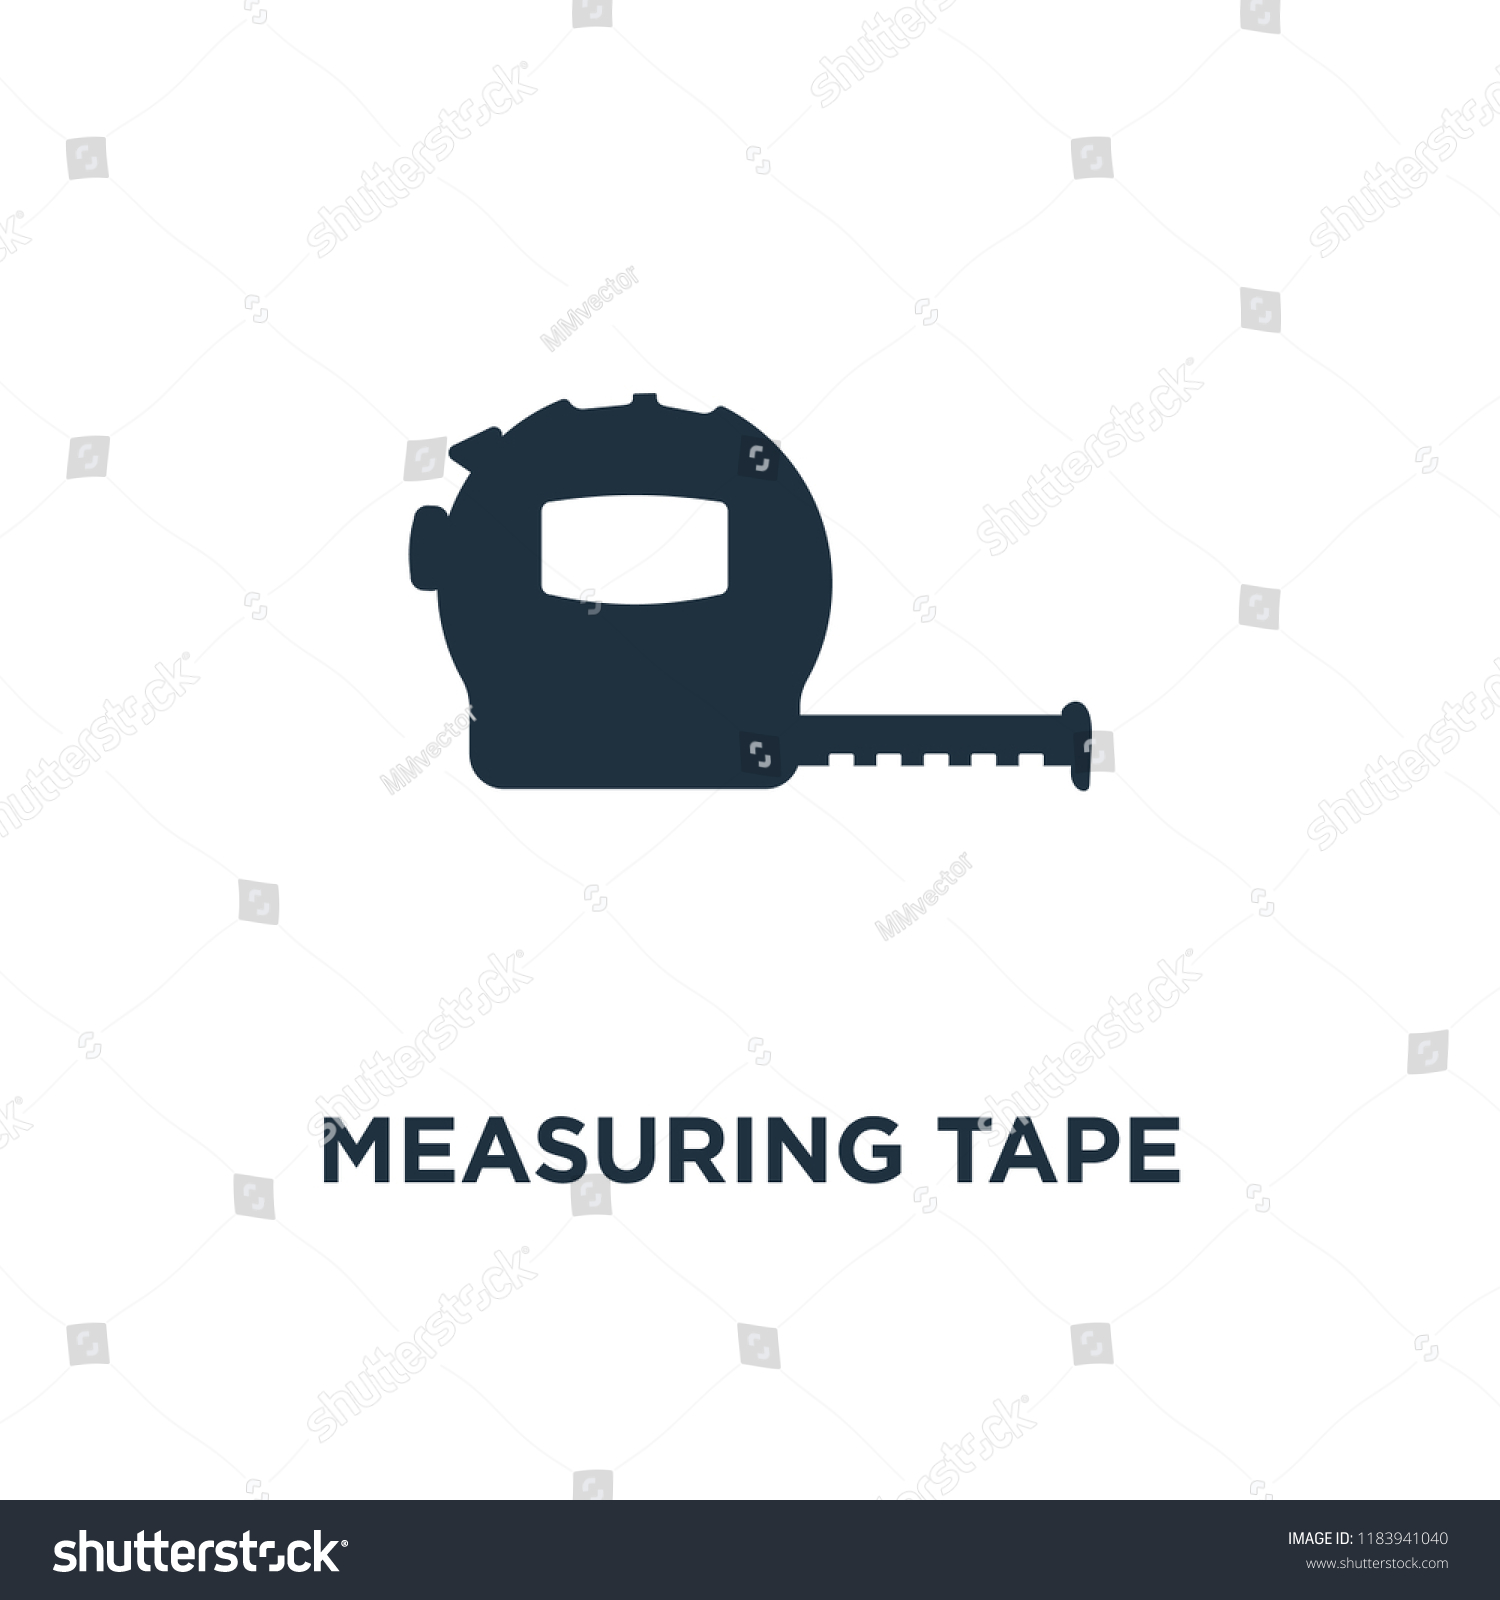 Measuring Tape Icon Black Filled Vector Stock Royalty Free Diagram Illustration Symbol On White Background